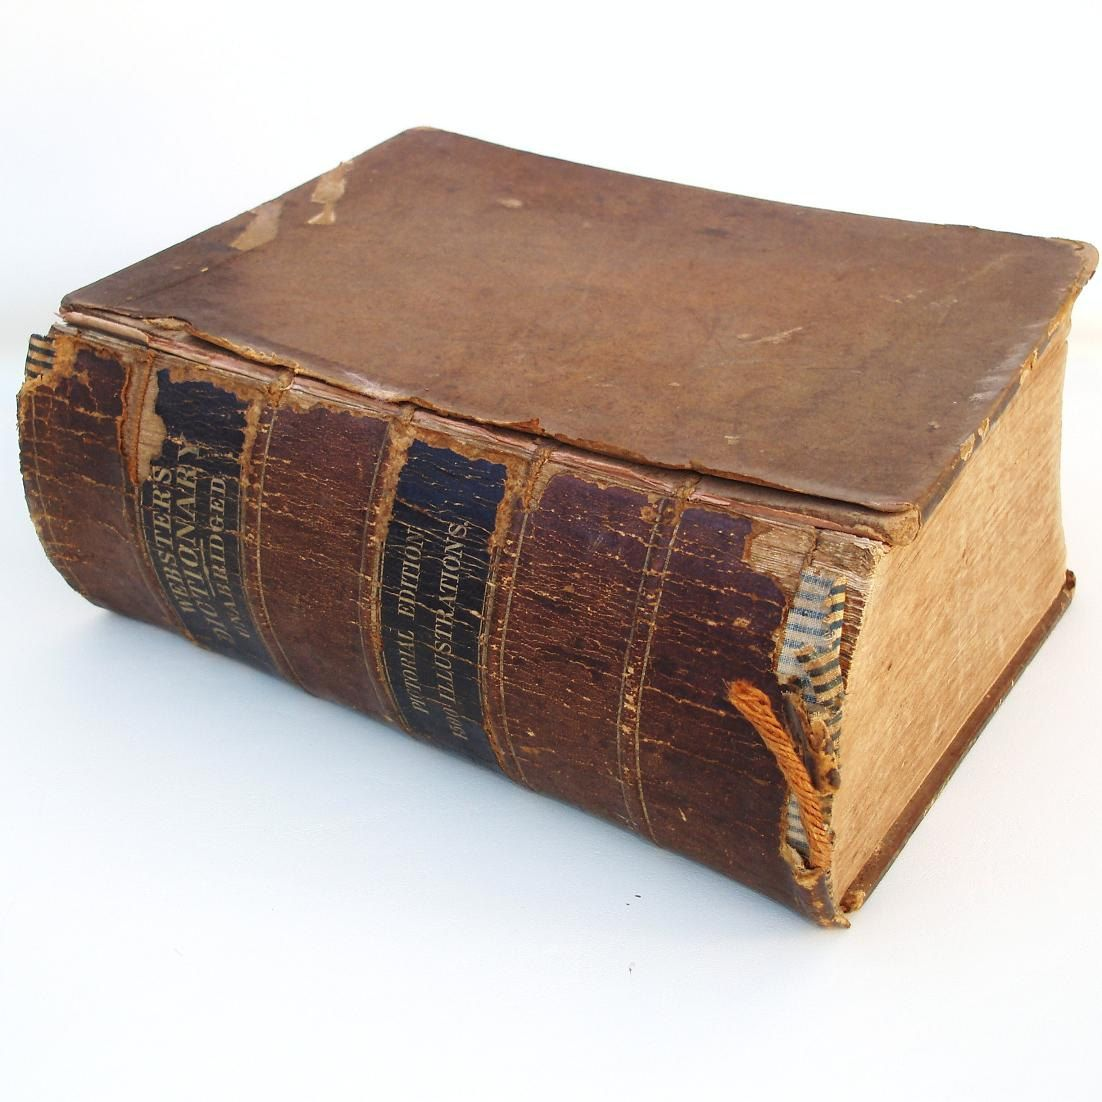 Executive Privilege Webster Definition: Antique Websters Dictionary 1860 Pictorial Edition